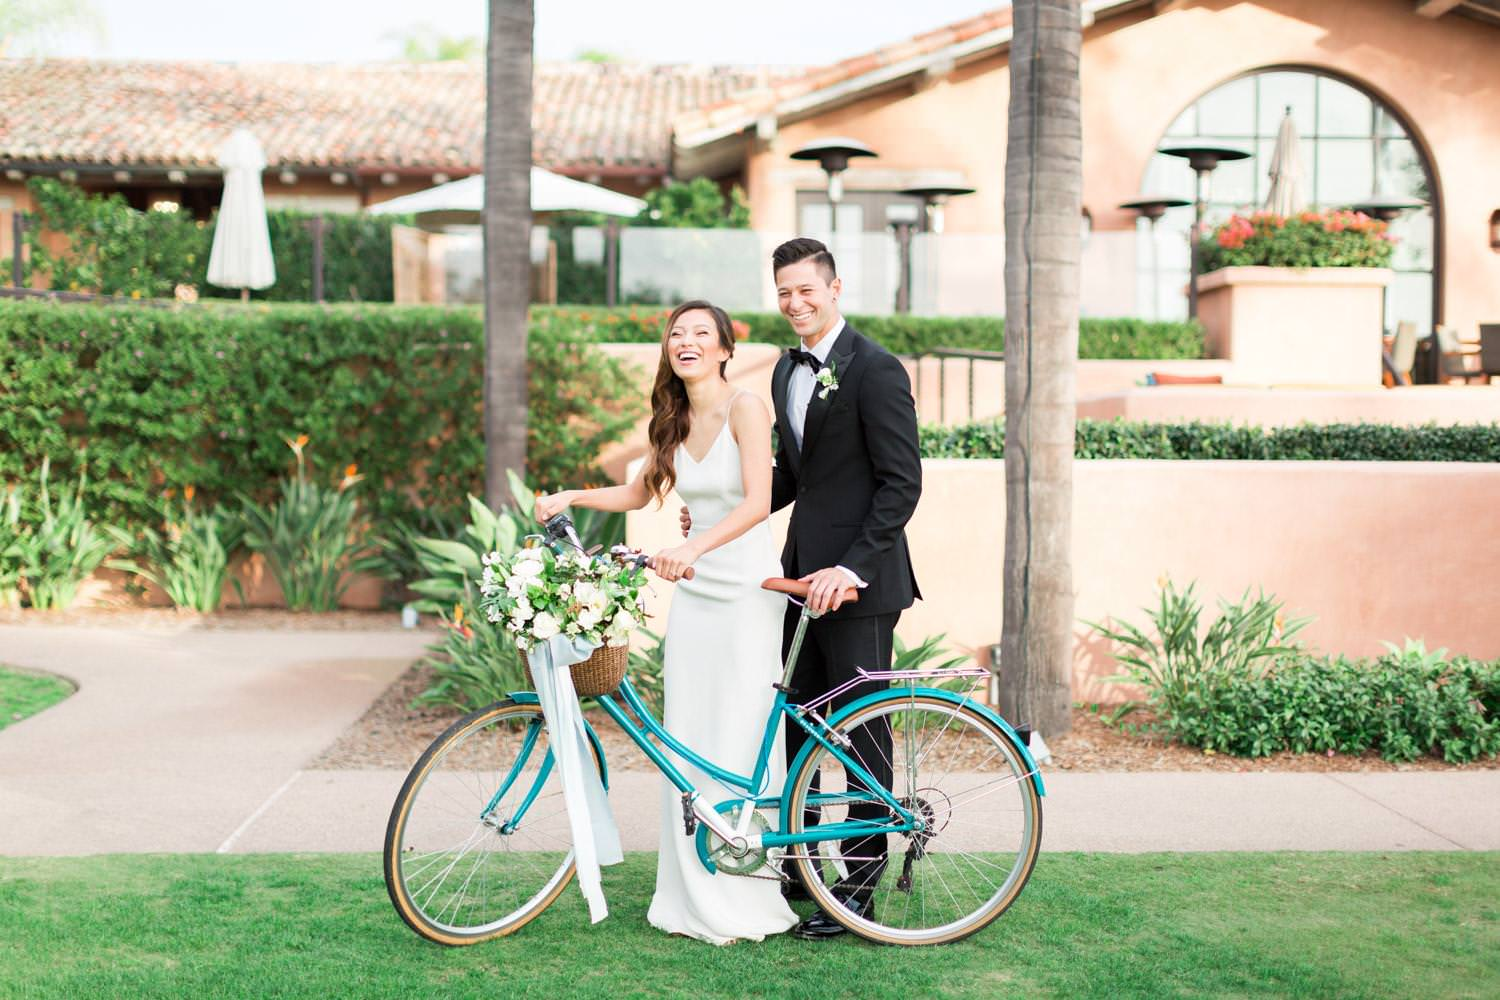 Rancho Valencia Wedding Photography by Cavin Elizabeth, bride and groom with floralized bicycle